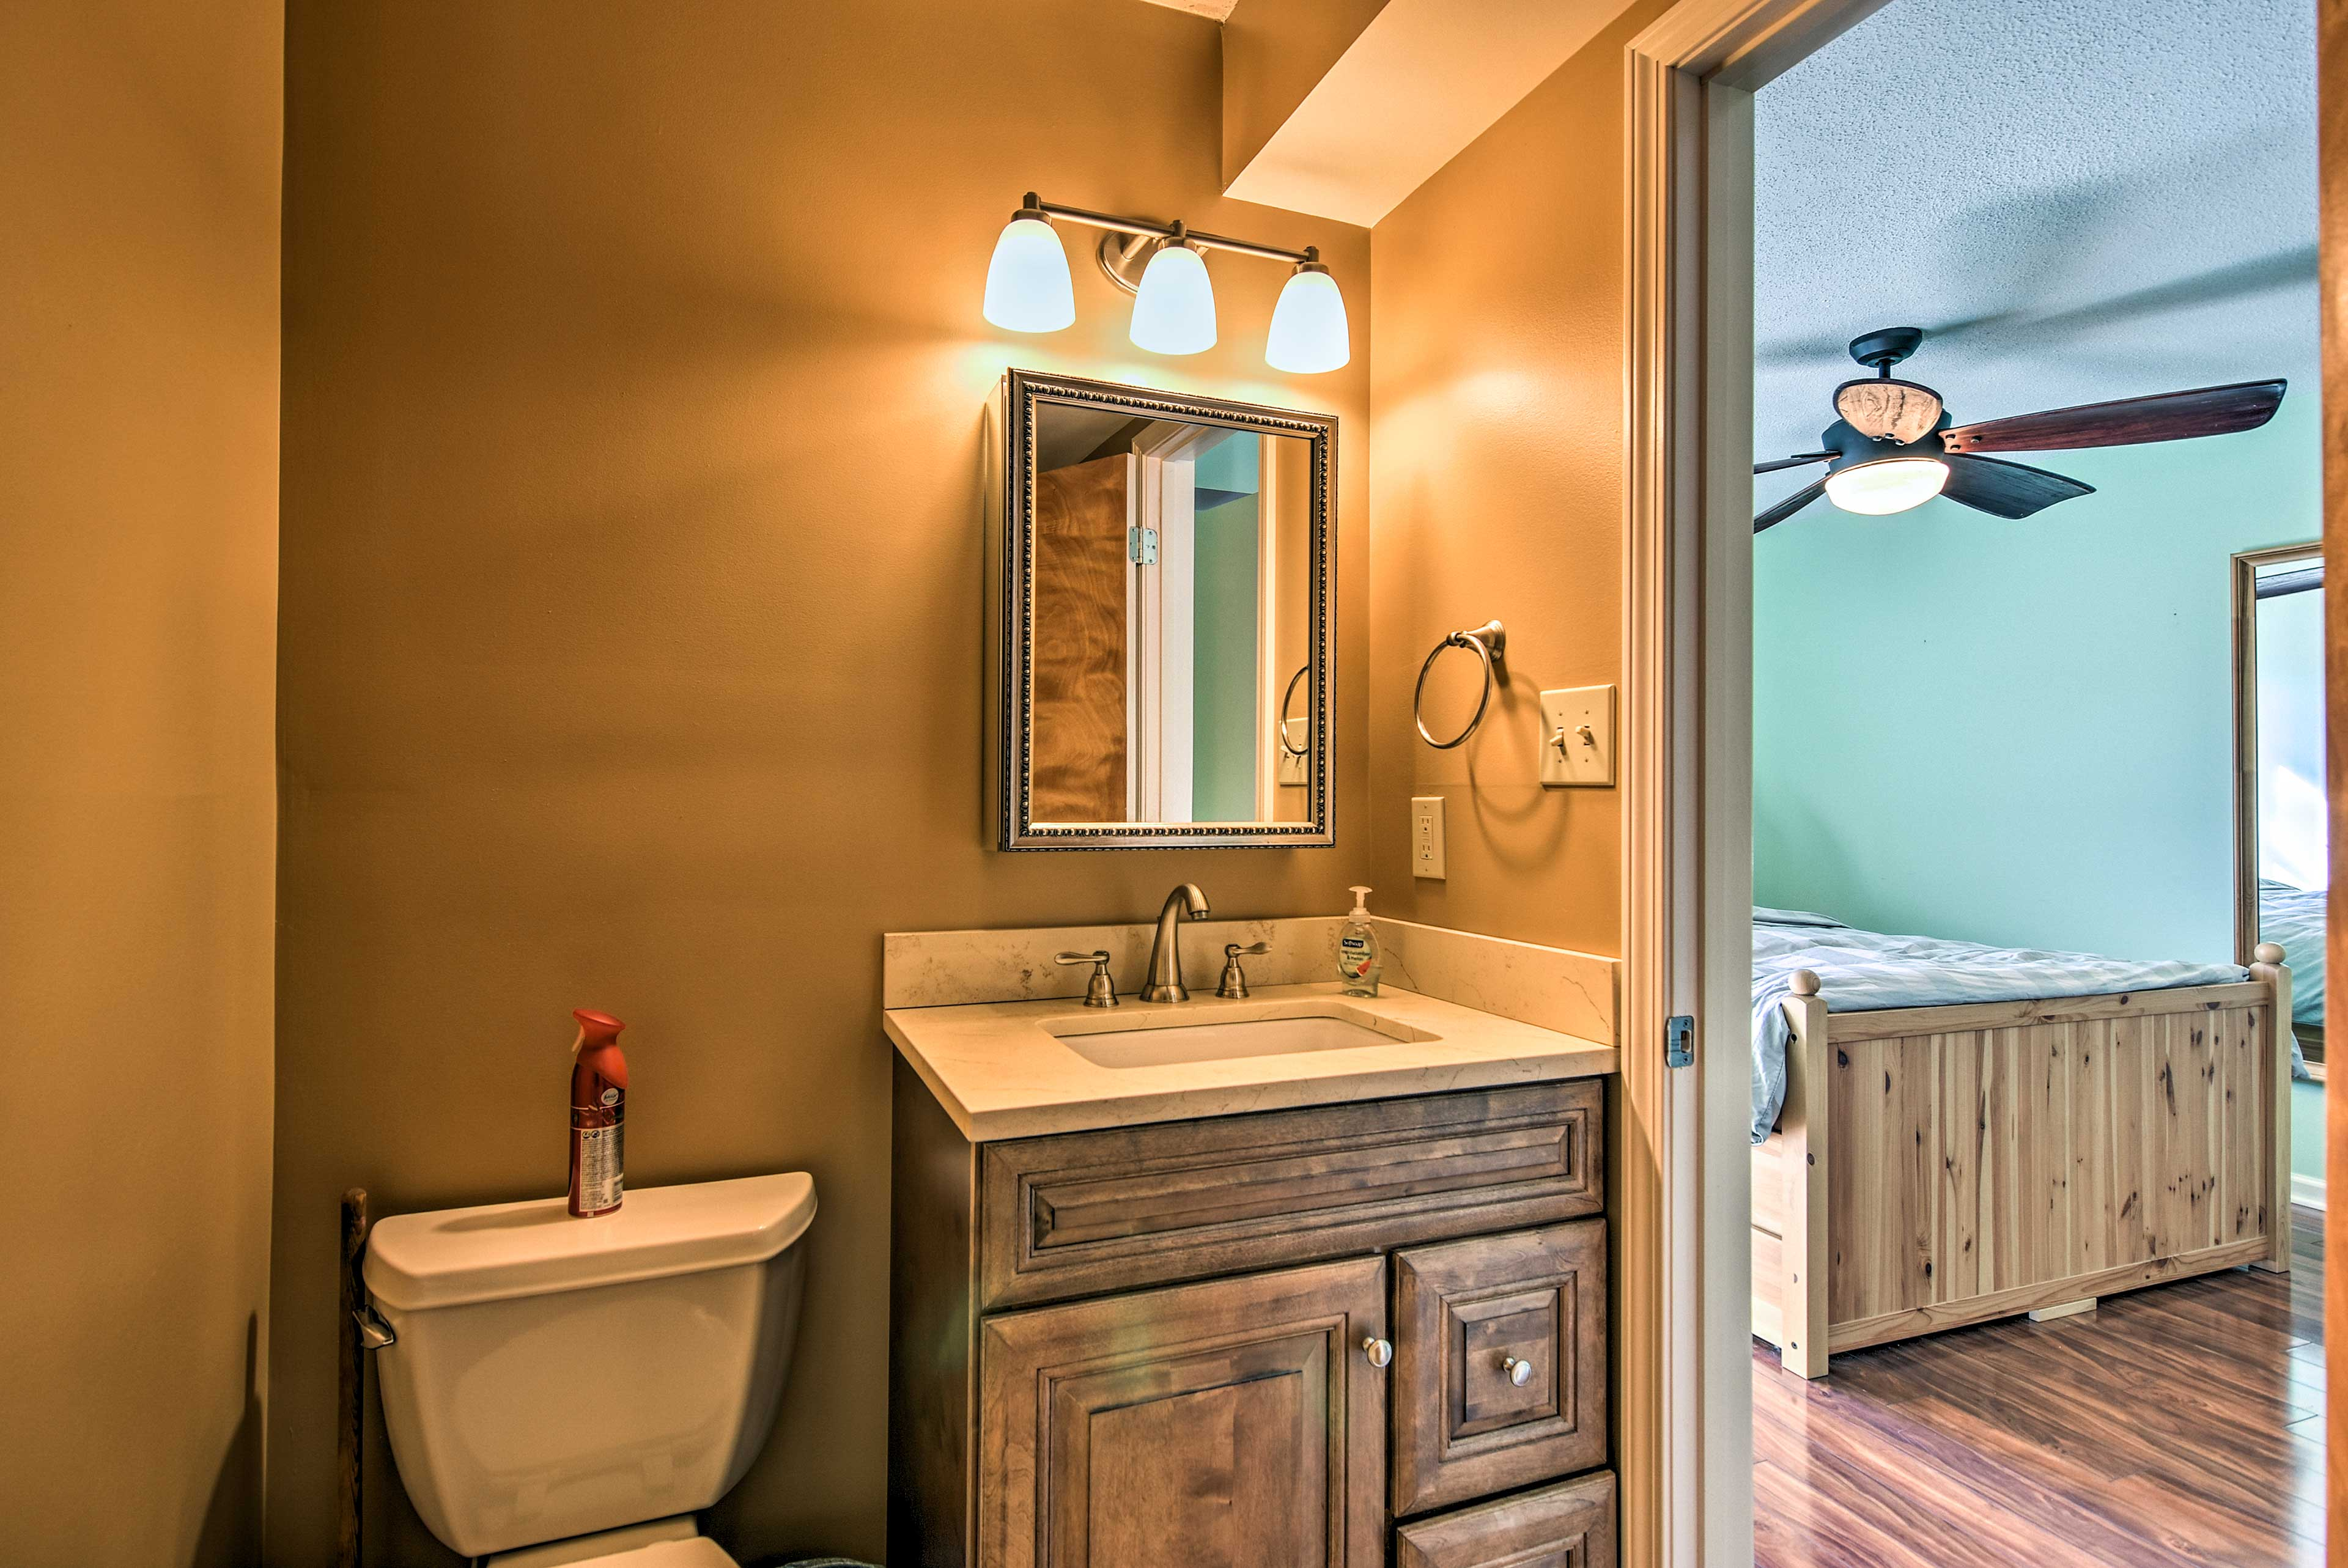 A full en-suite bathroom is provided for added convenience.